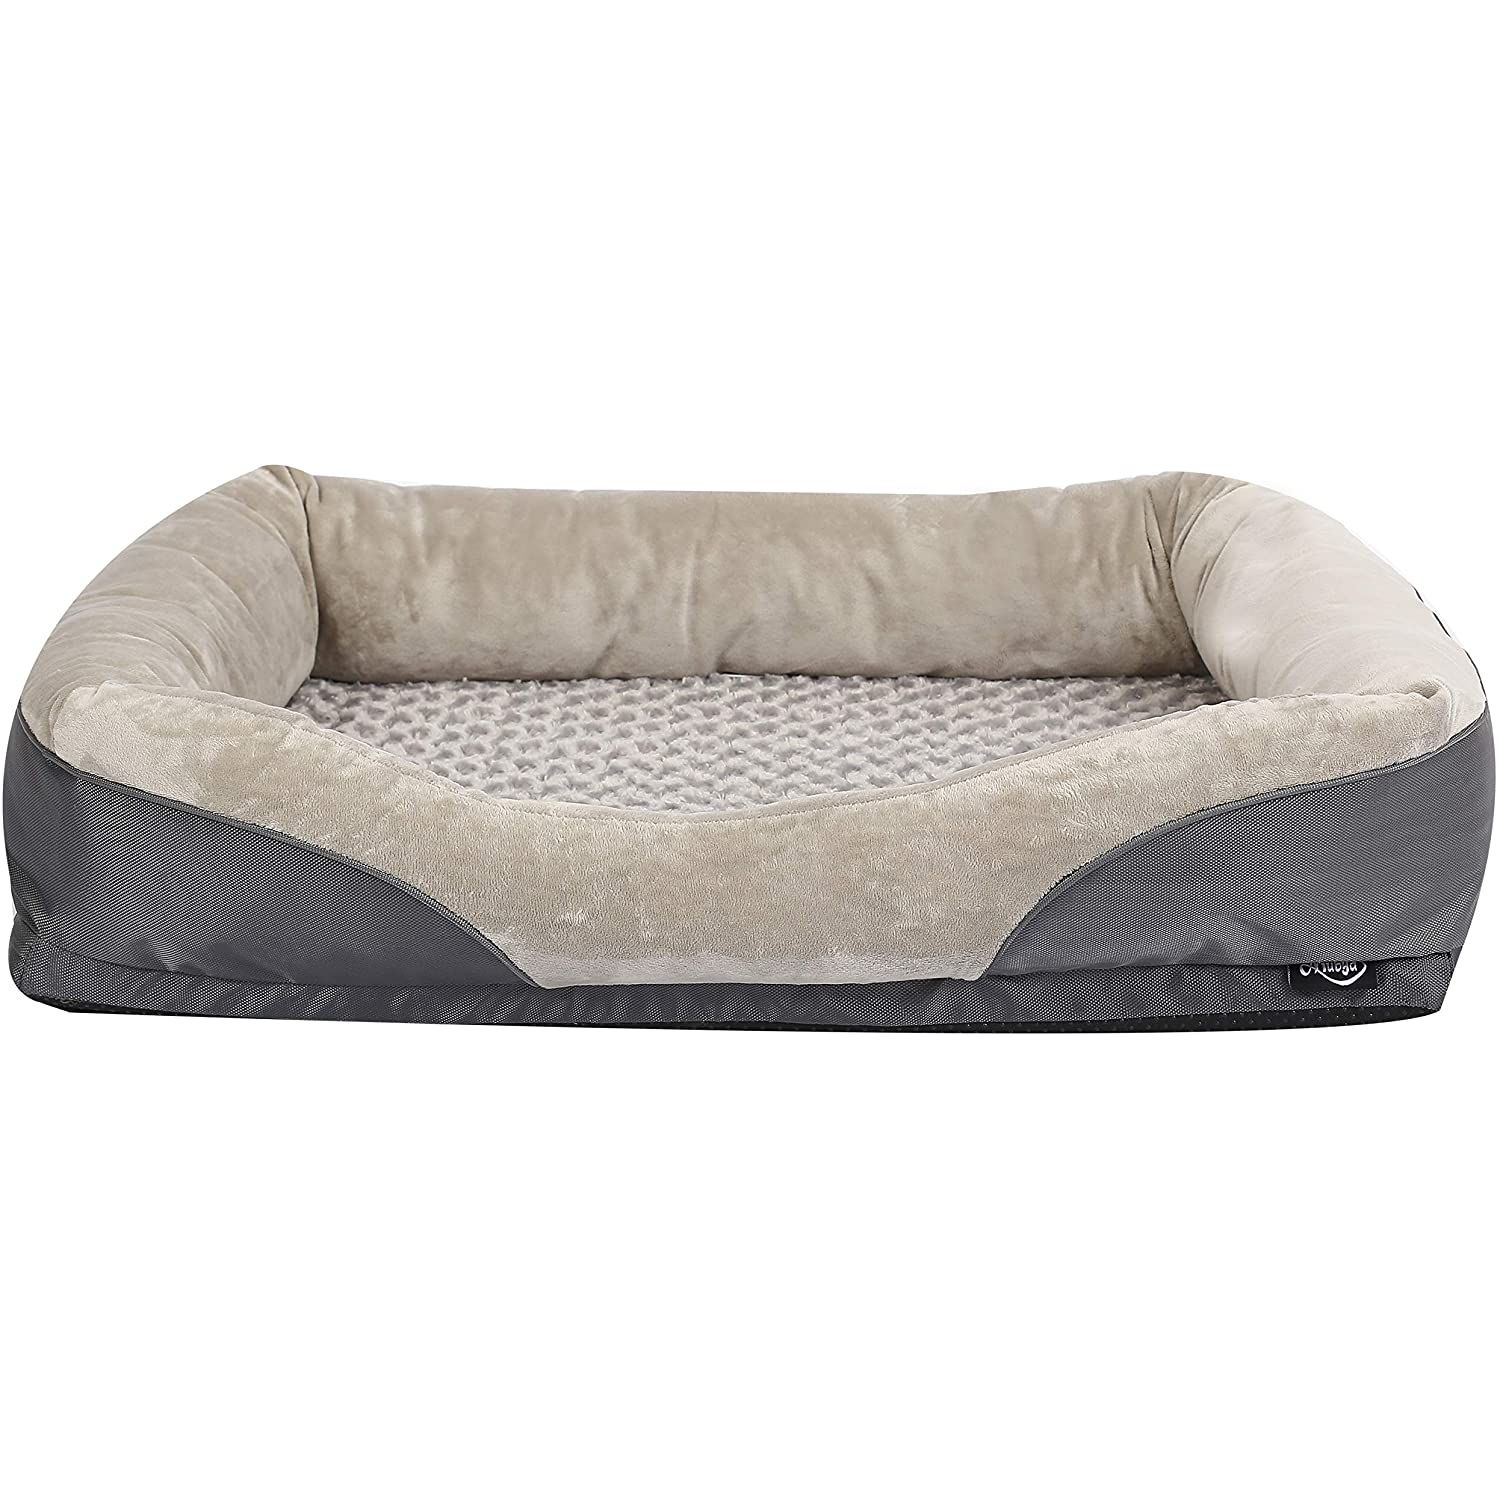 Niubya Large Orthopedic Dog Bed Waterproof Memory Foam Pet Bed With Removable Washable Cover Free Chewy Memory Foam Pet Bed Orthopedic Dog Orthopedic Dog Bed Pet bed with removable cover